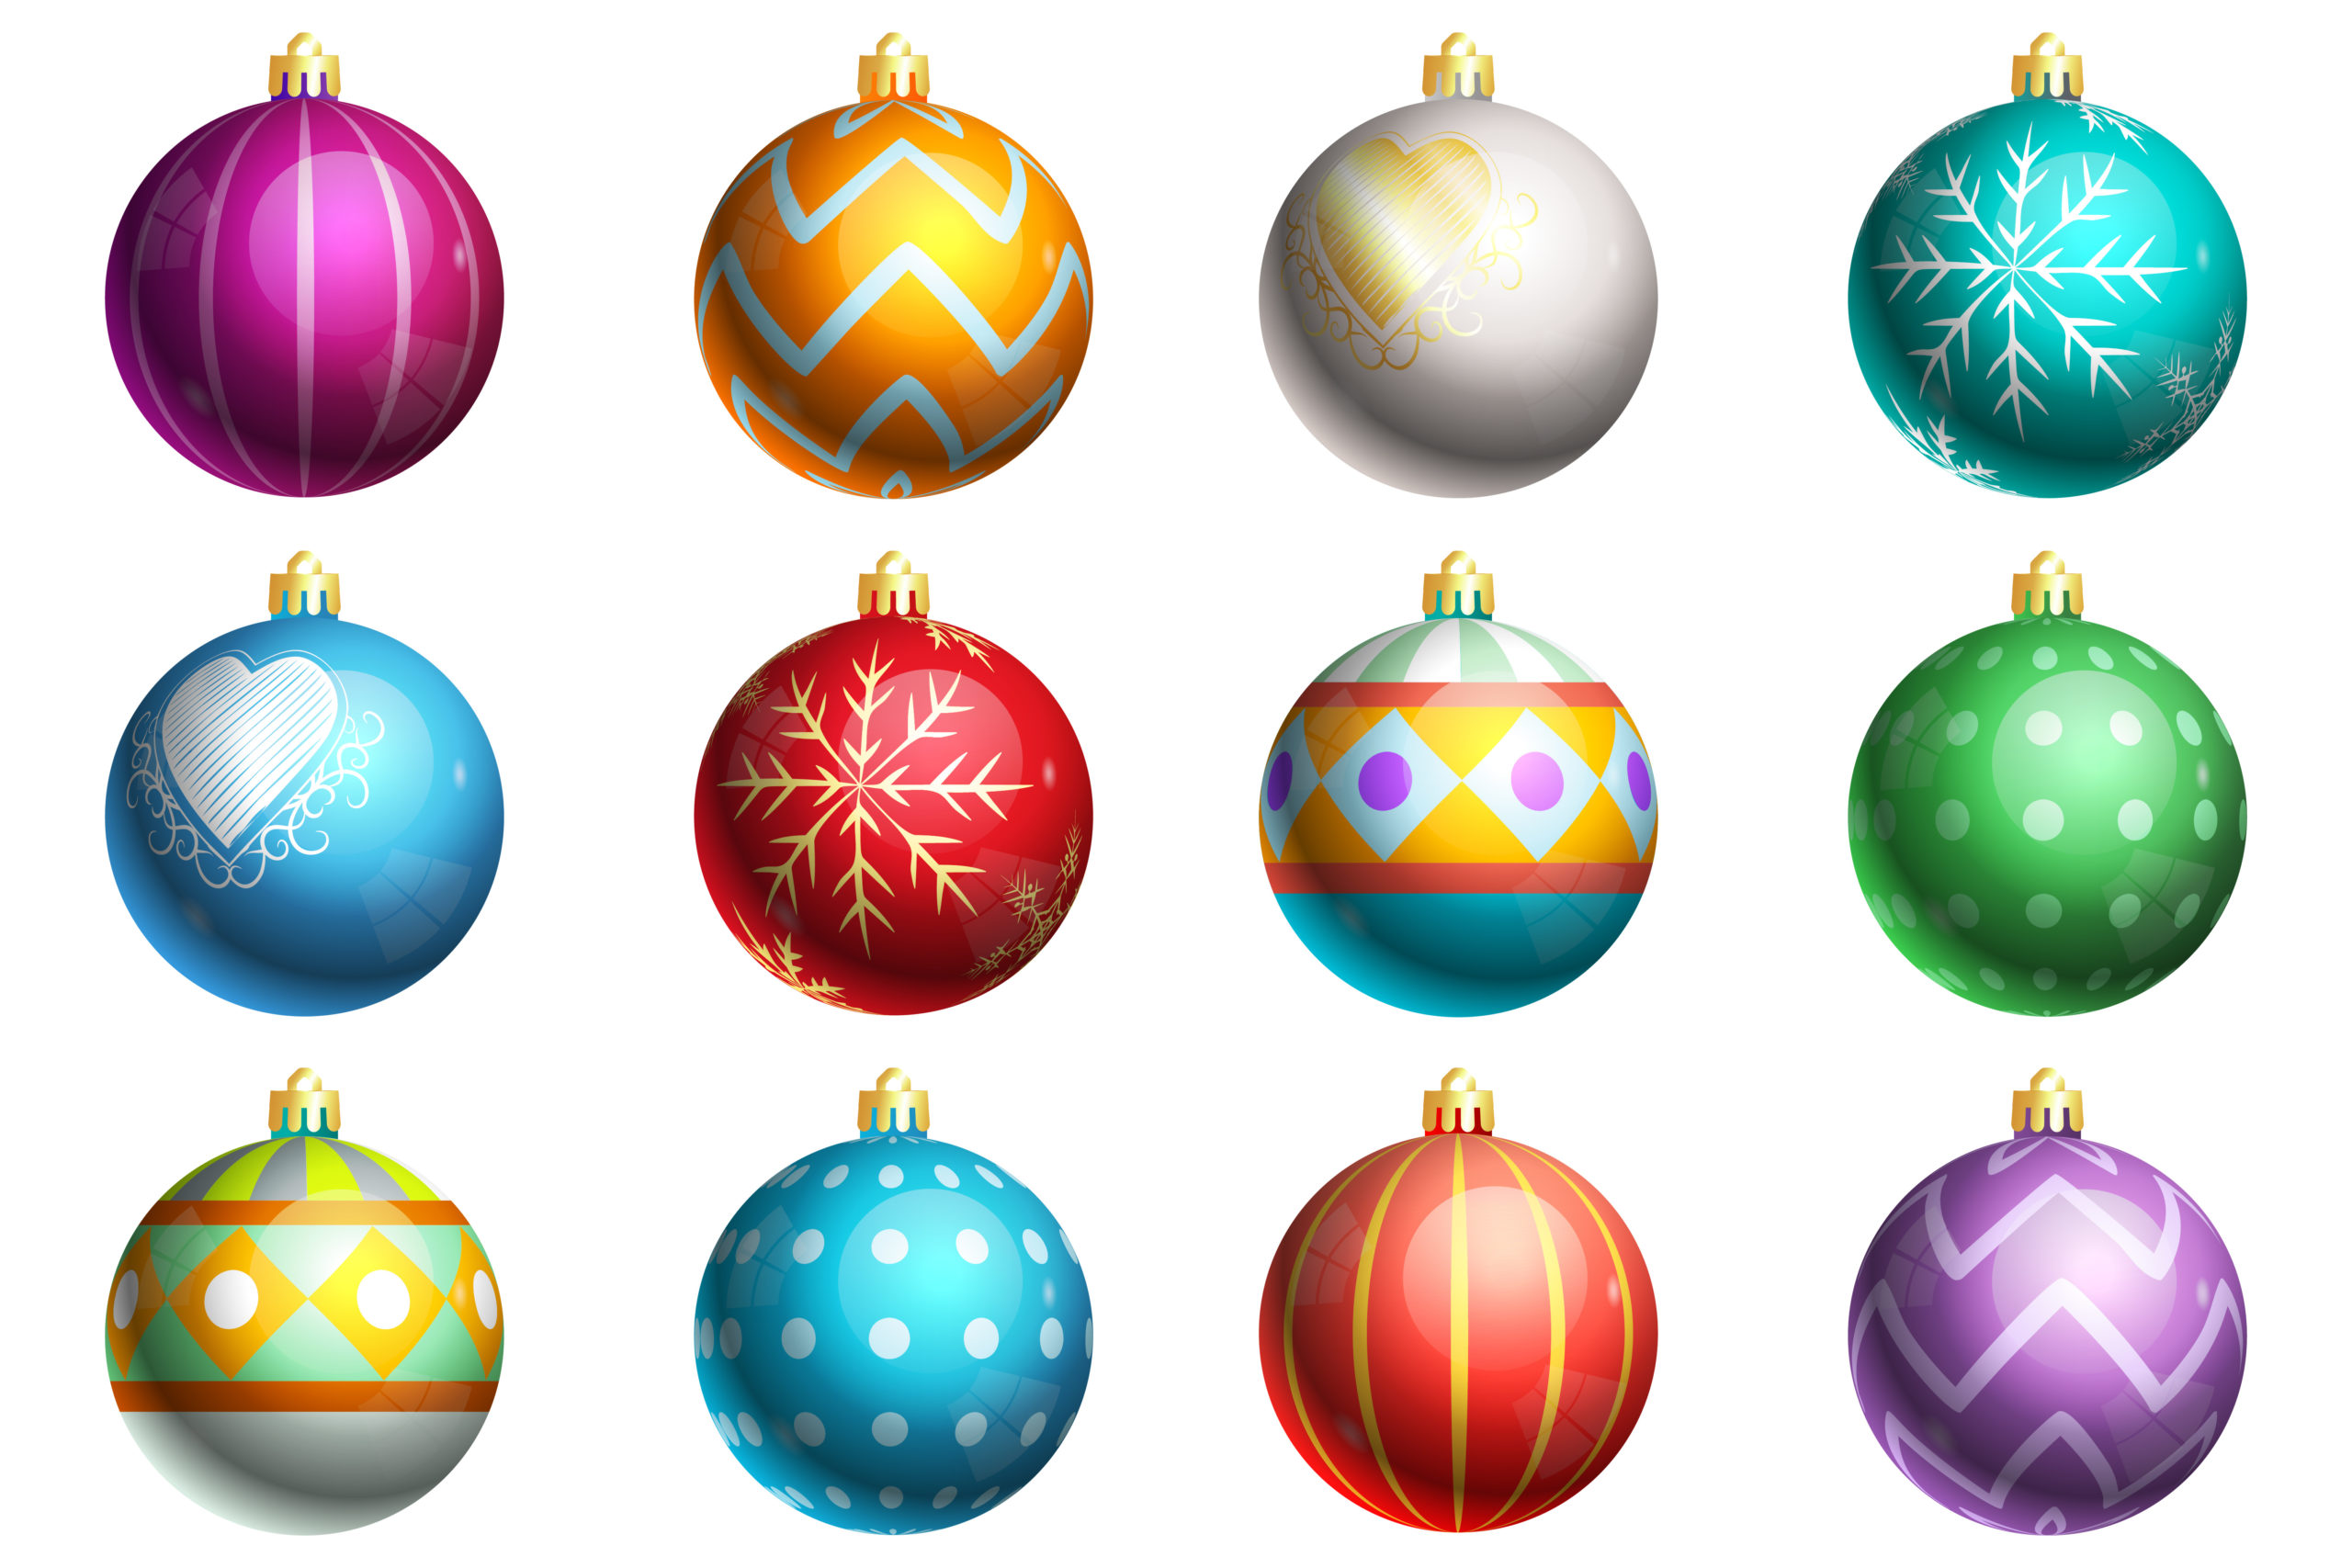 CHRISTMAS BALL ORNAMENT IDEAS TO TRY OUT